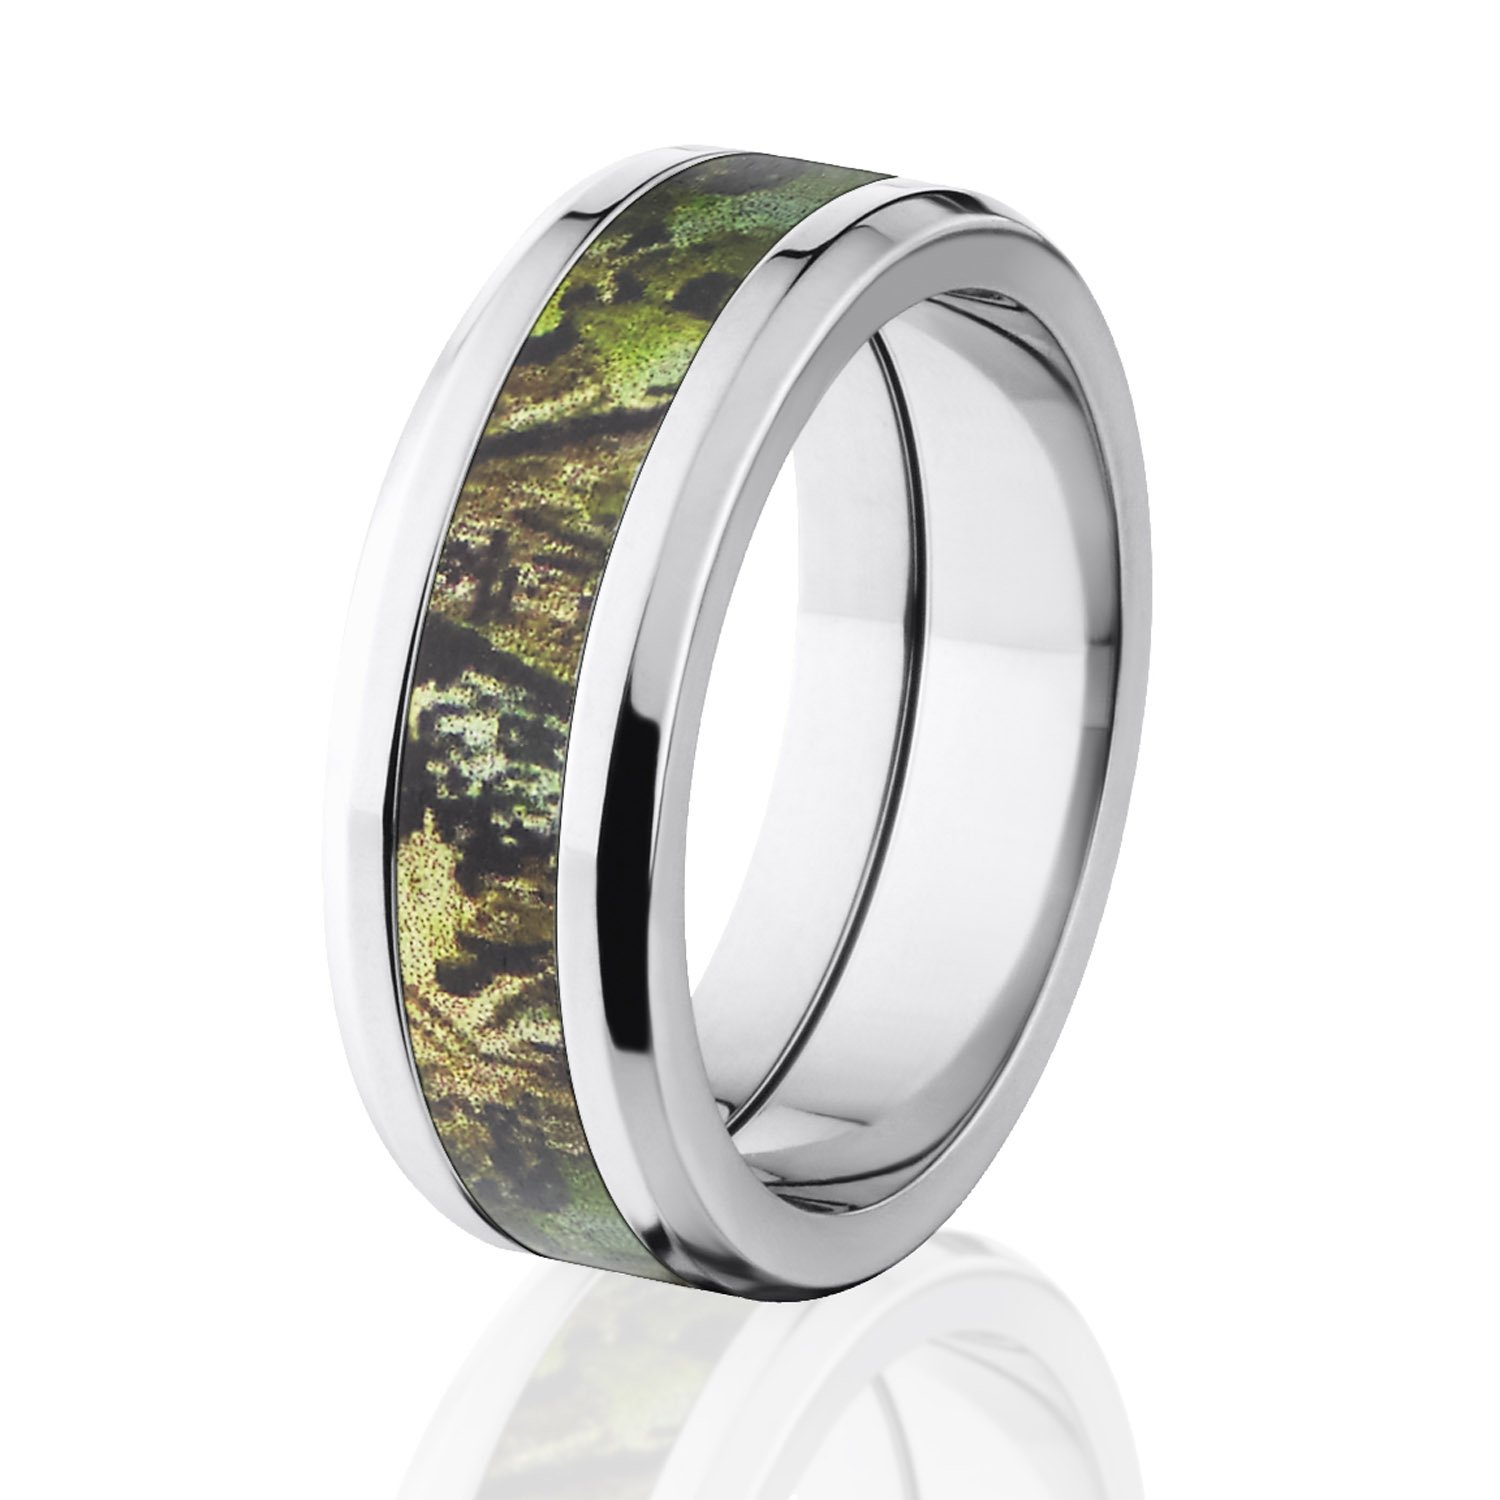 Amazon.com: camo wedding rings - $90-$500: Clothing, Shoes & Jewelry